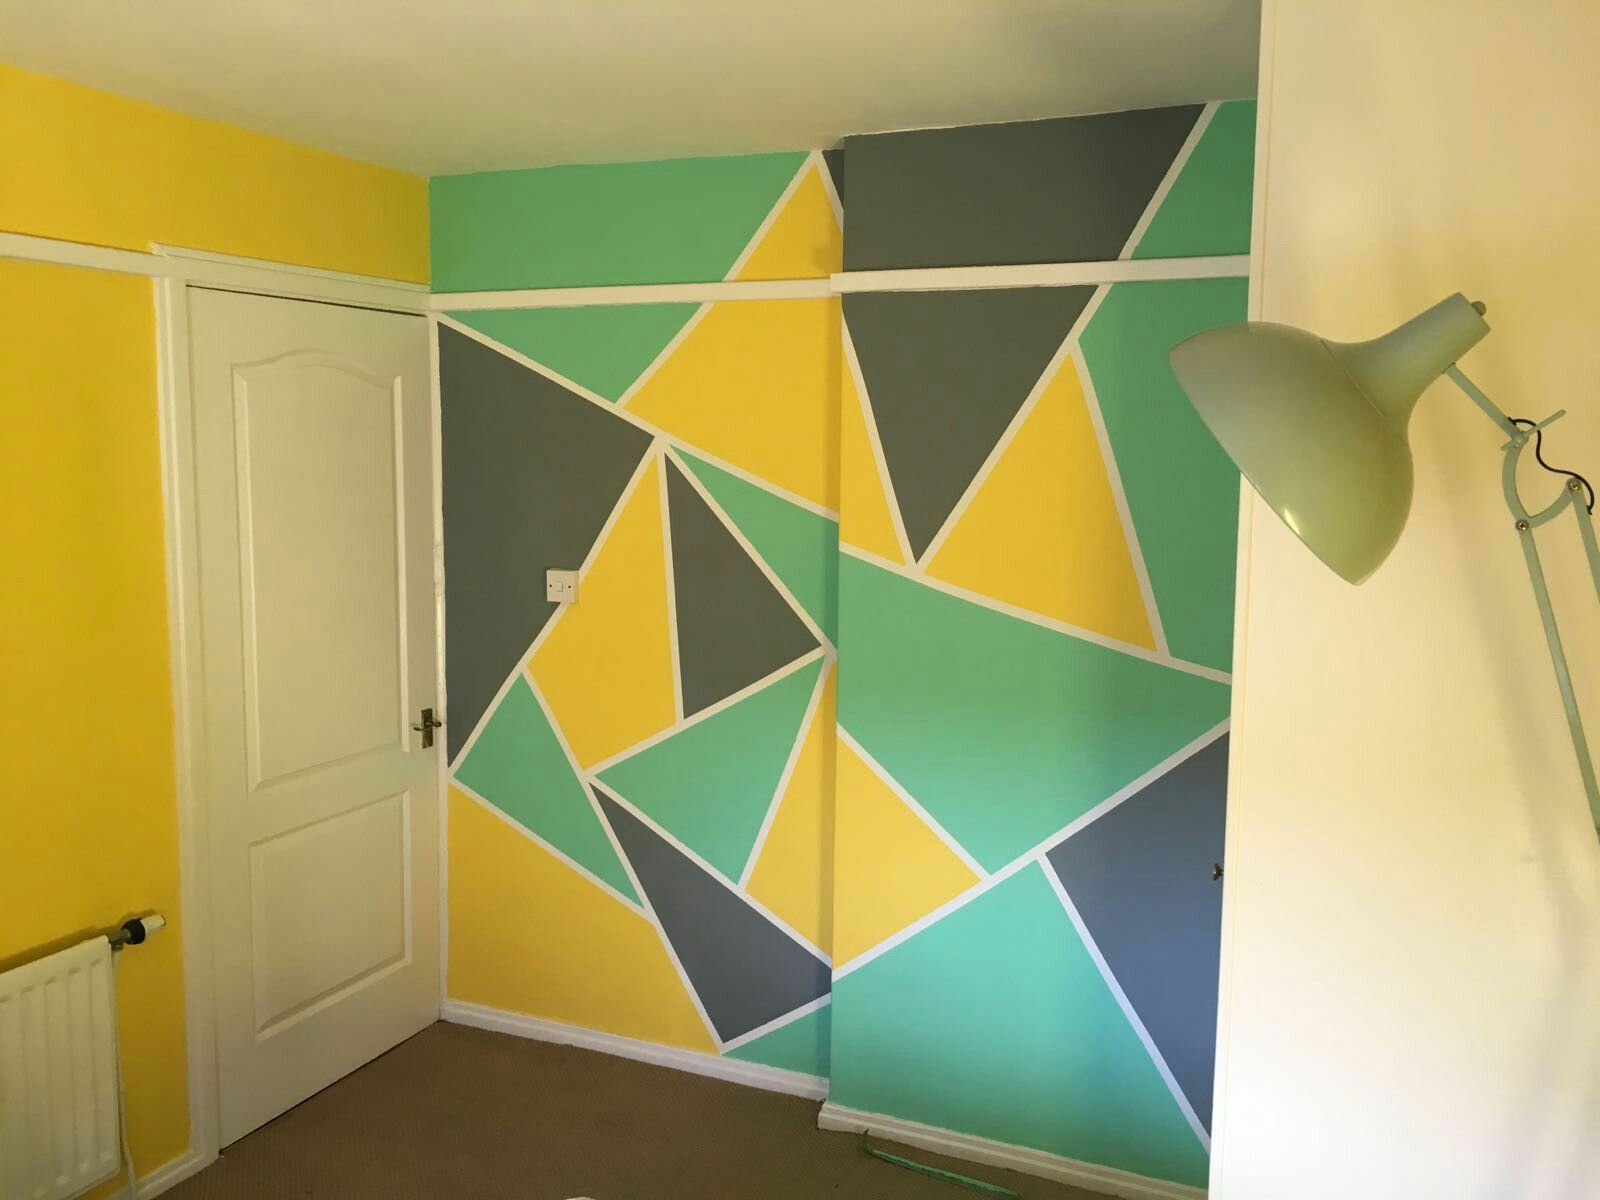 Wall painting idea using frog tape. | falfestés minta | Pinterest ...